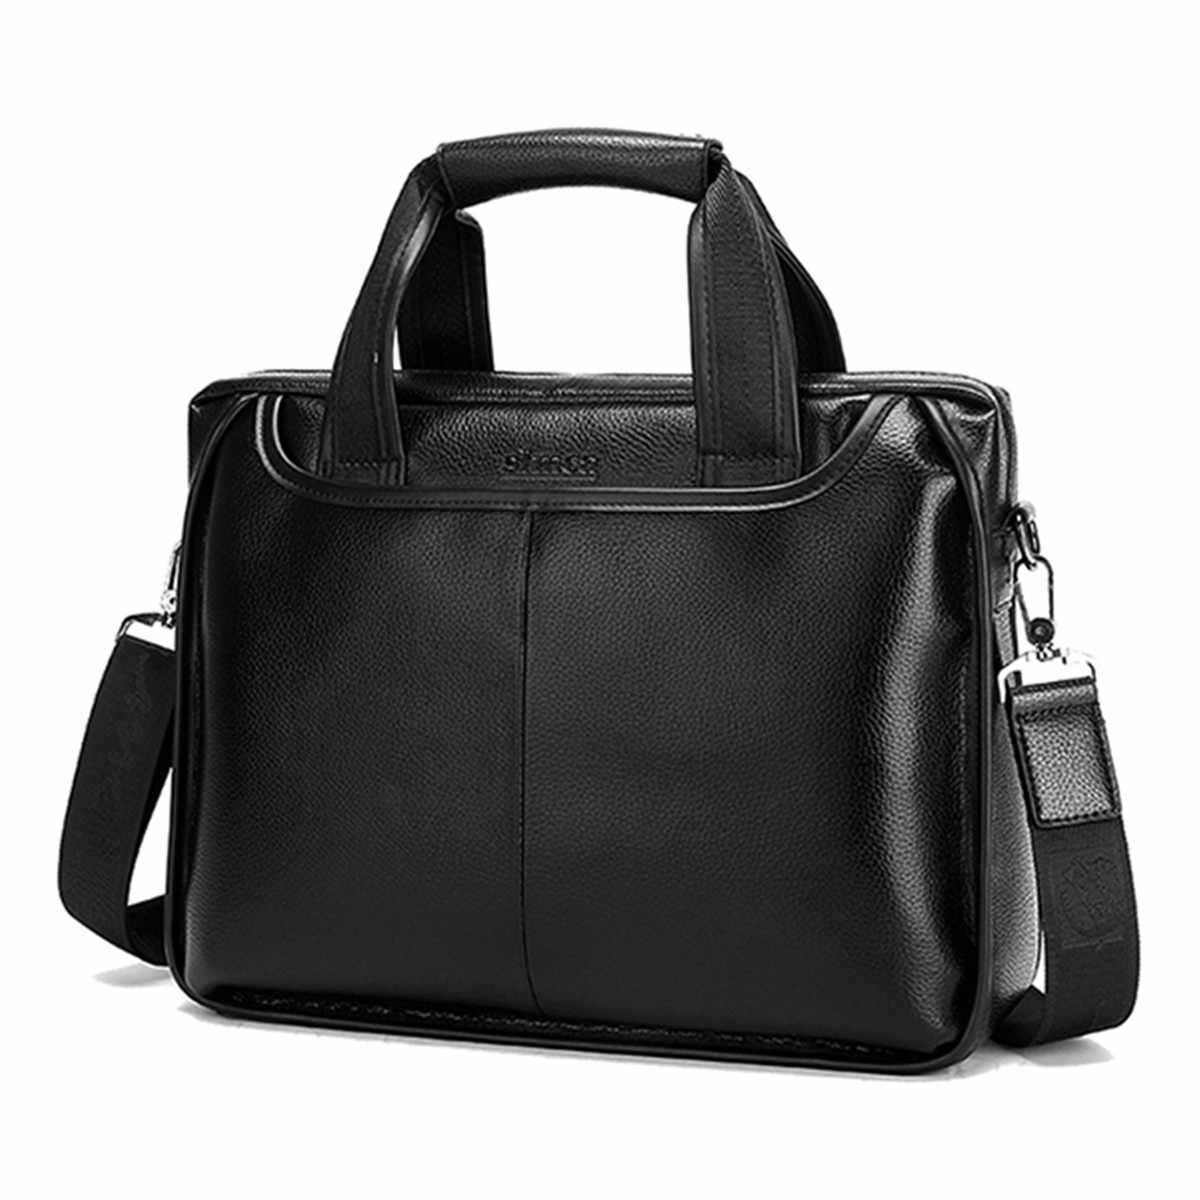 Osmond Men Genuine Leather Handbags Casual Leather Laptop Bags Male Business Travel Messenger Bags Men's Crossbody Shoulder Bag